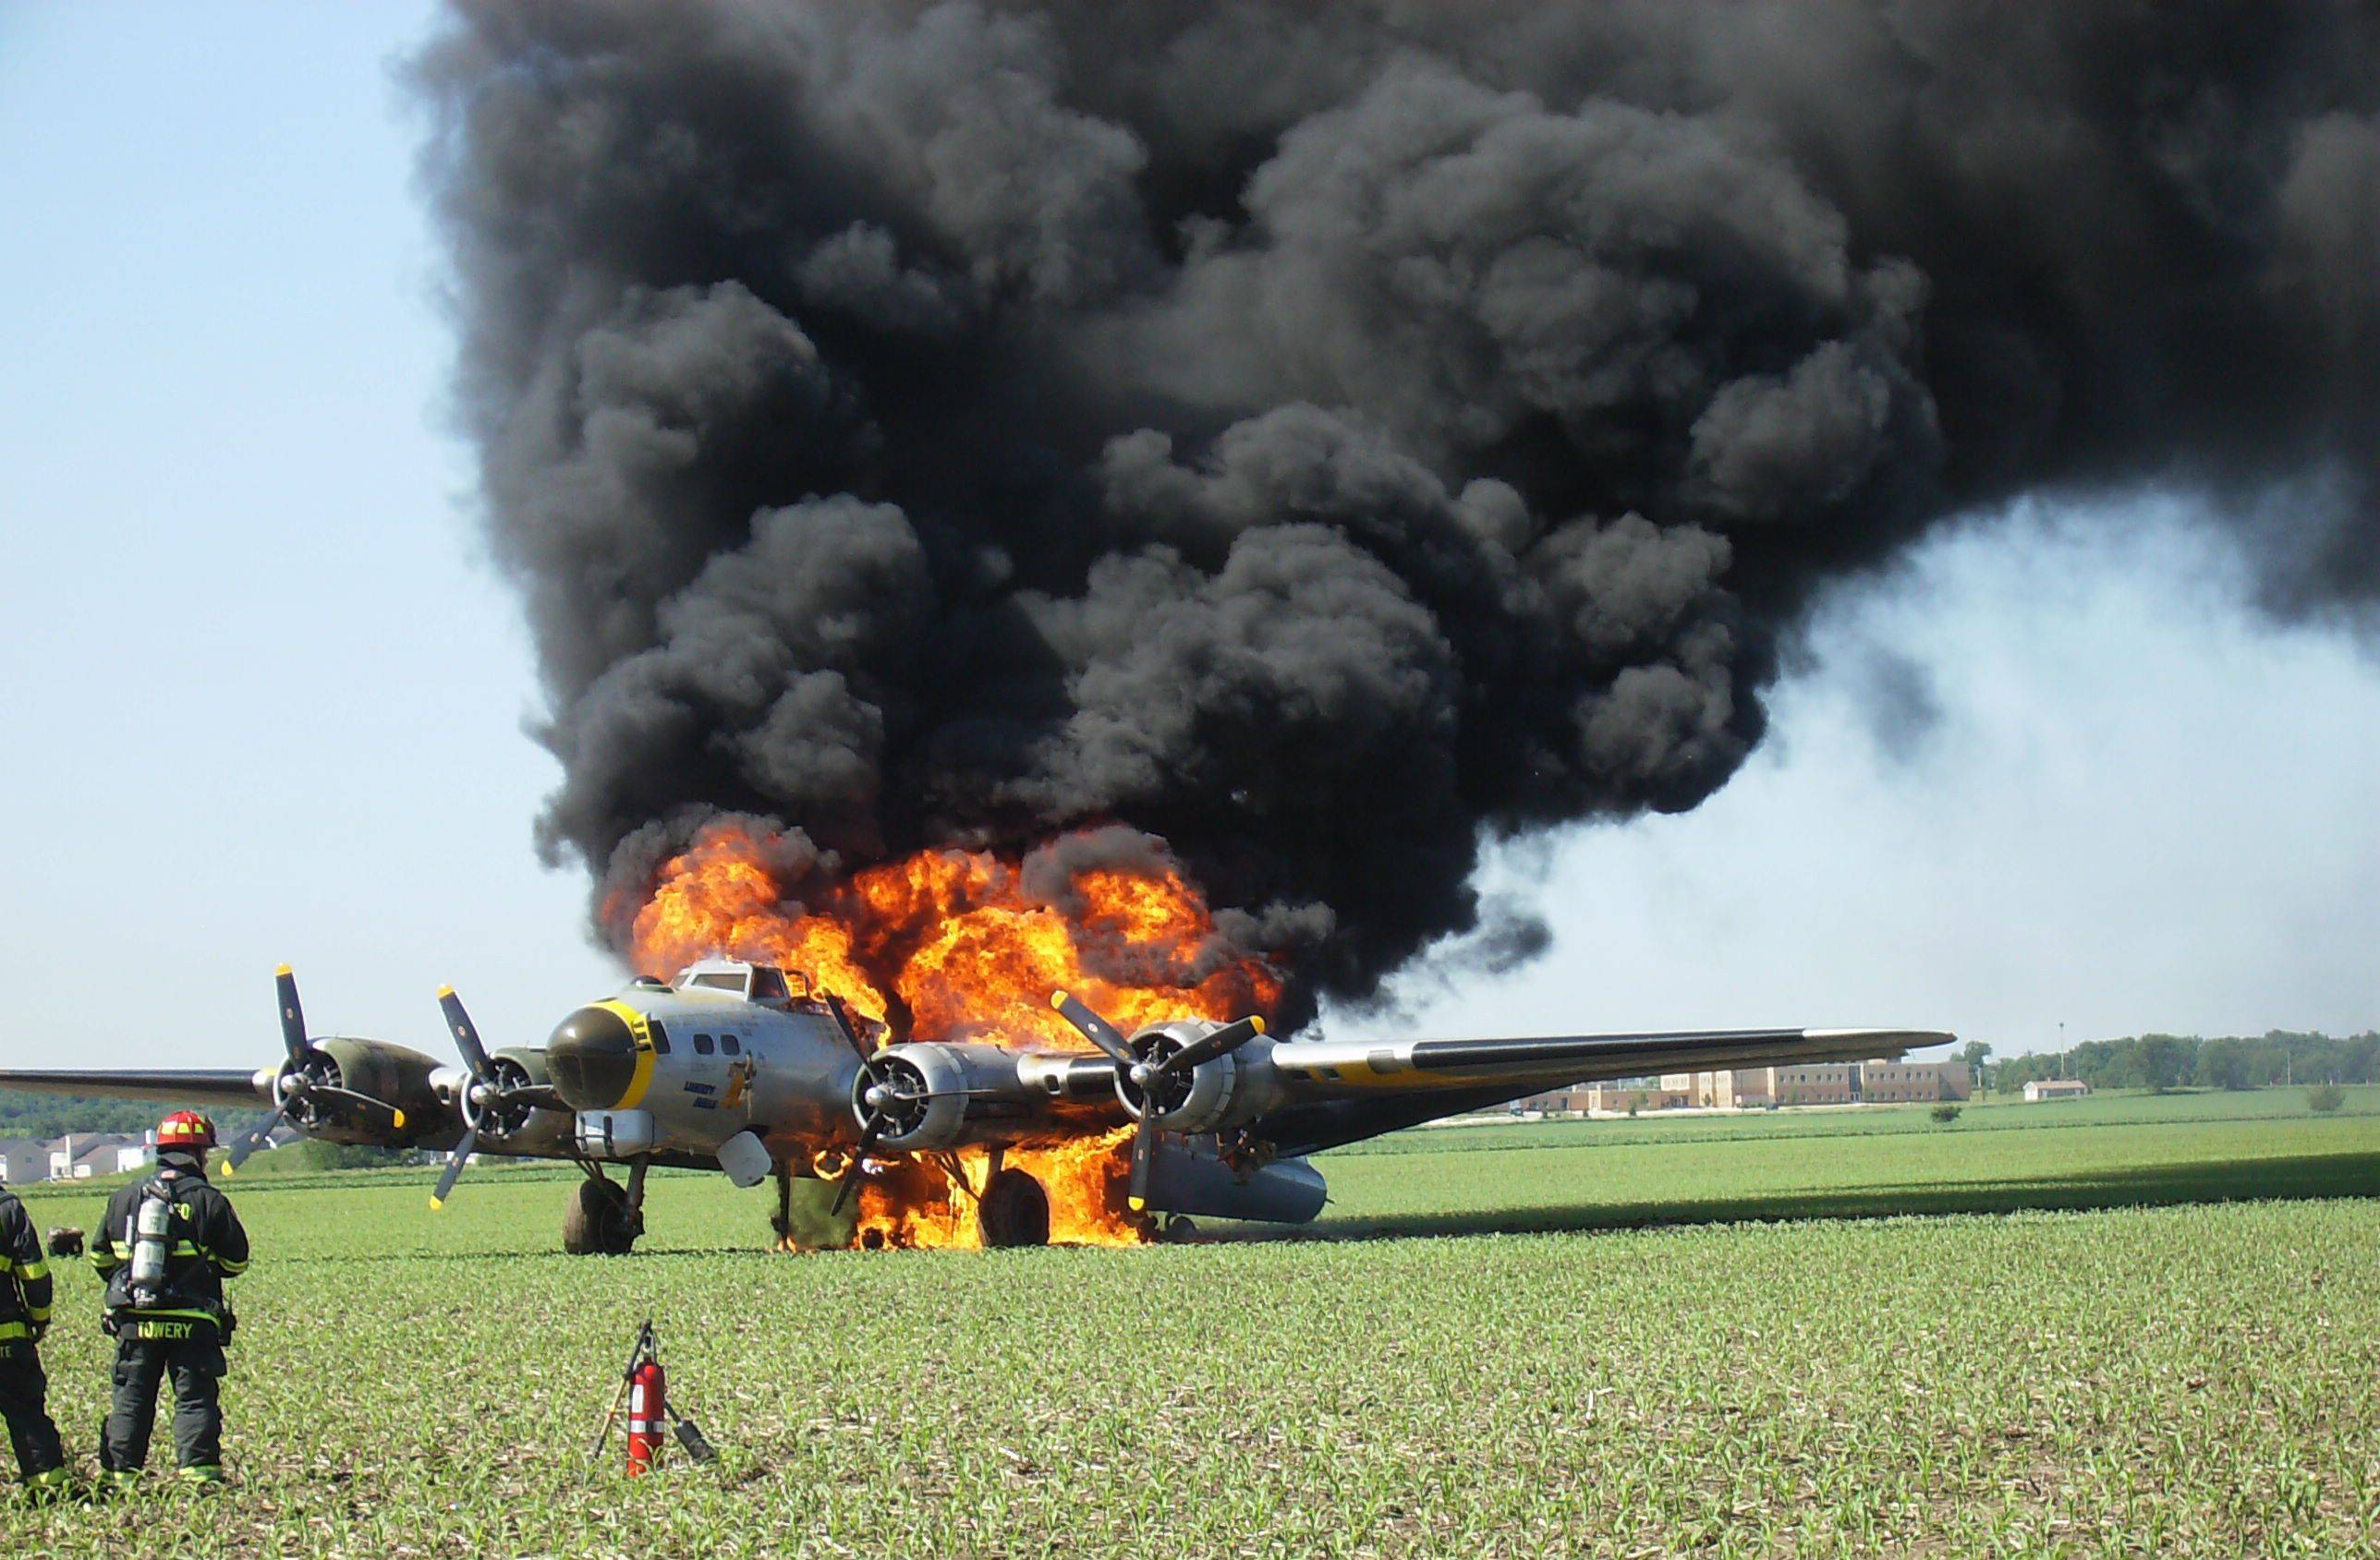 Fire destroys WWII bomber in Oswego